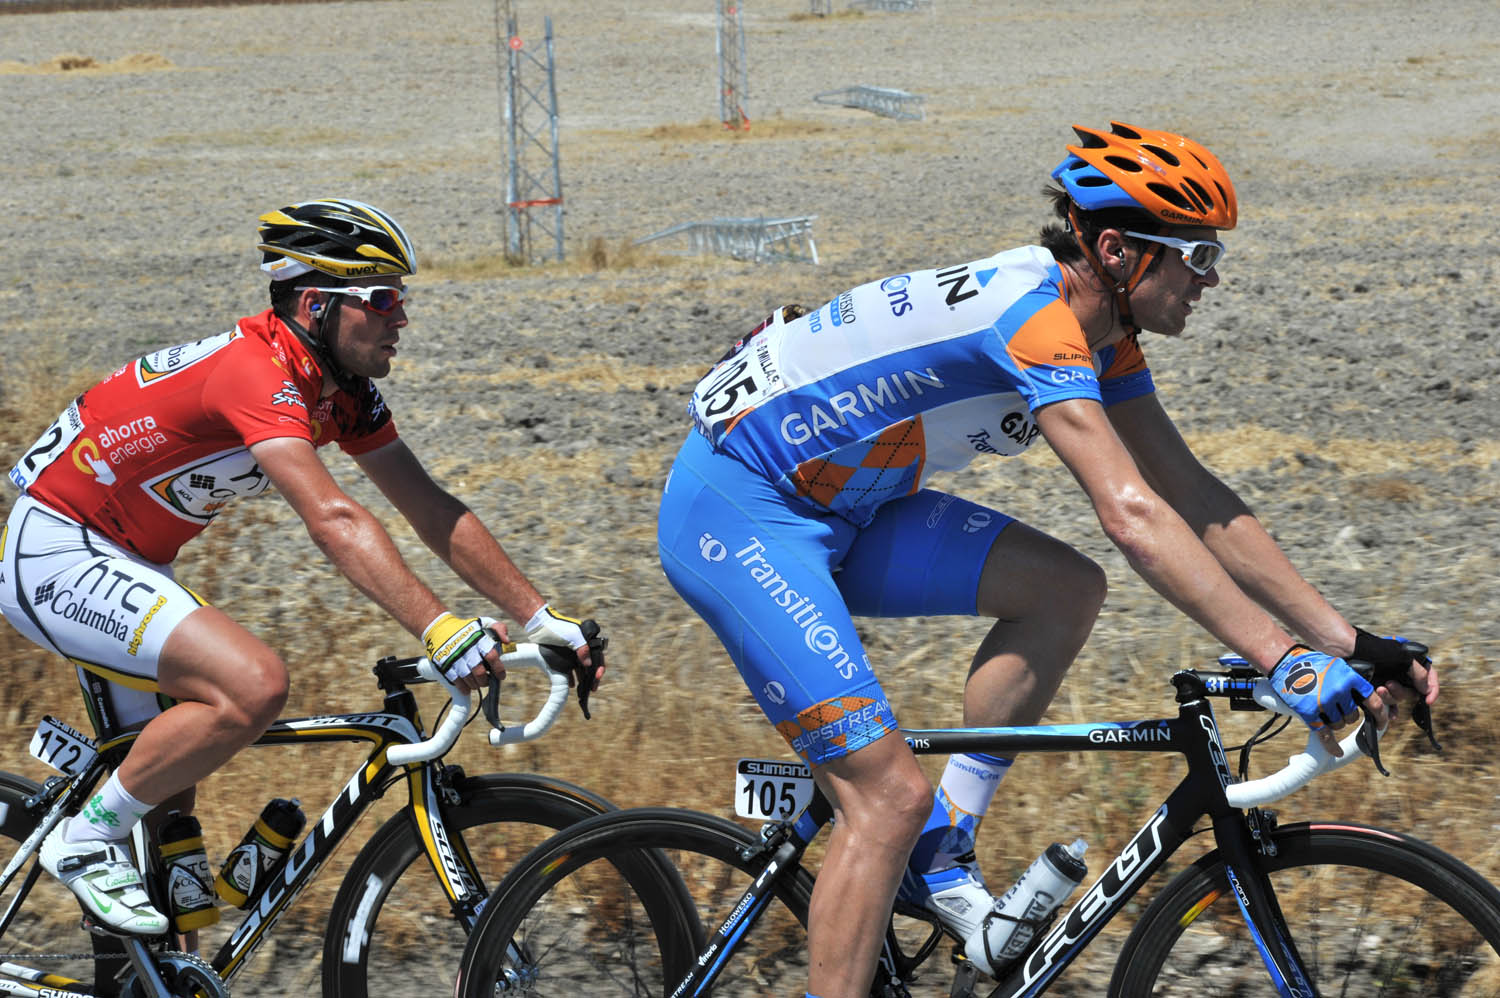 Mark Cavendish and David Millar, Vuelta a Espana 2010, stage two